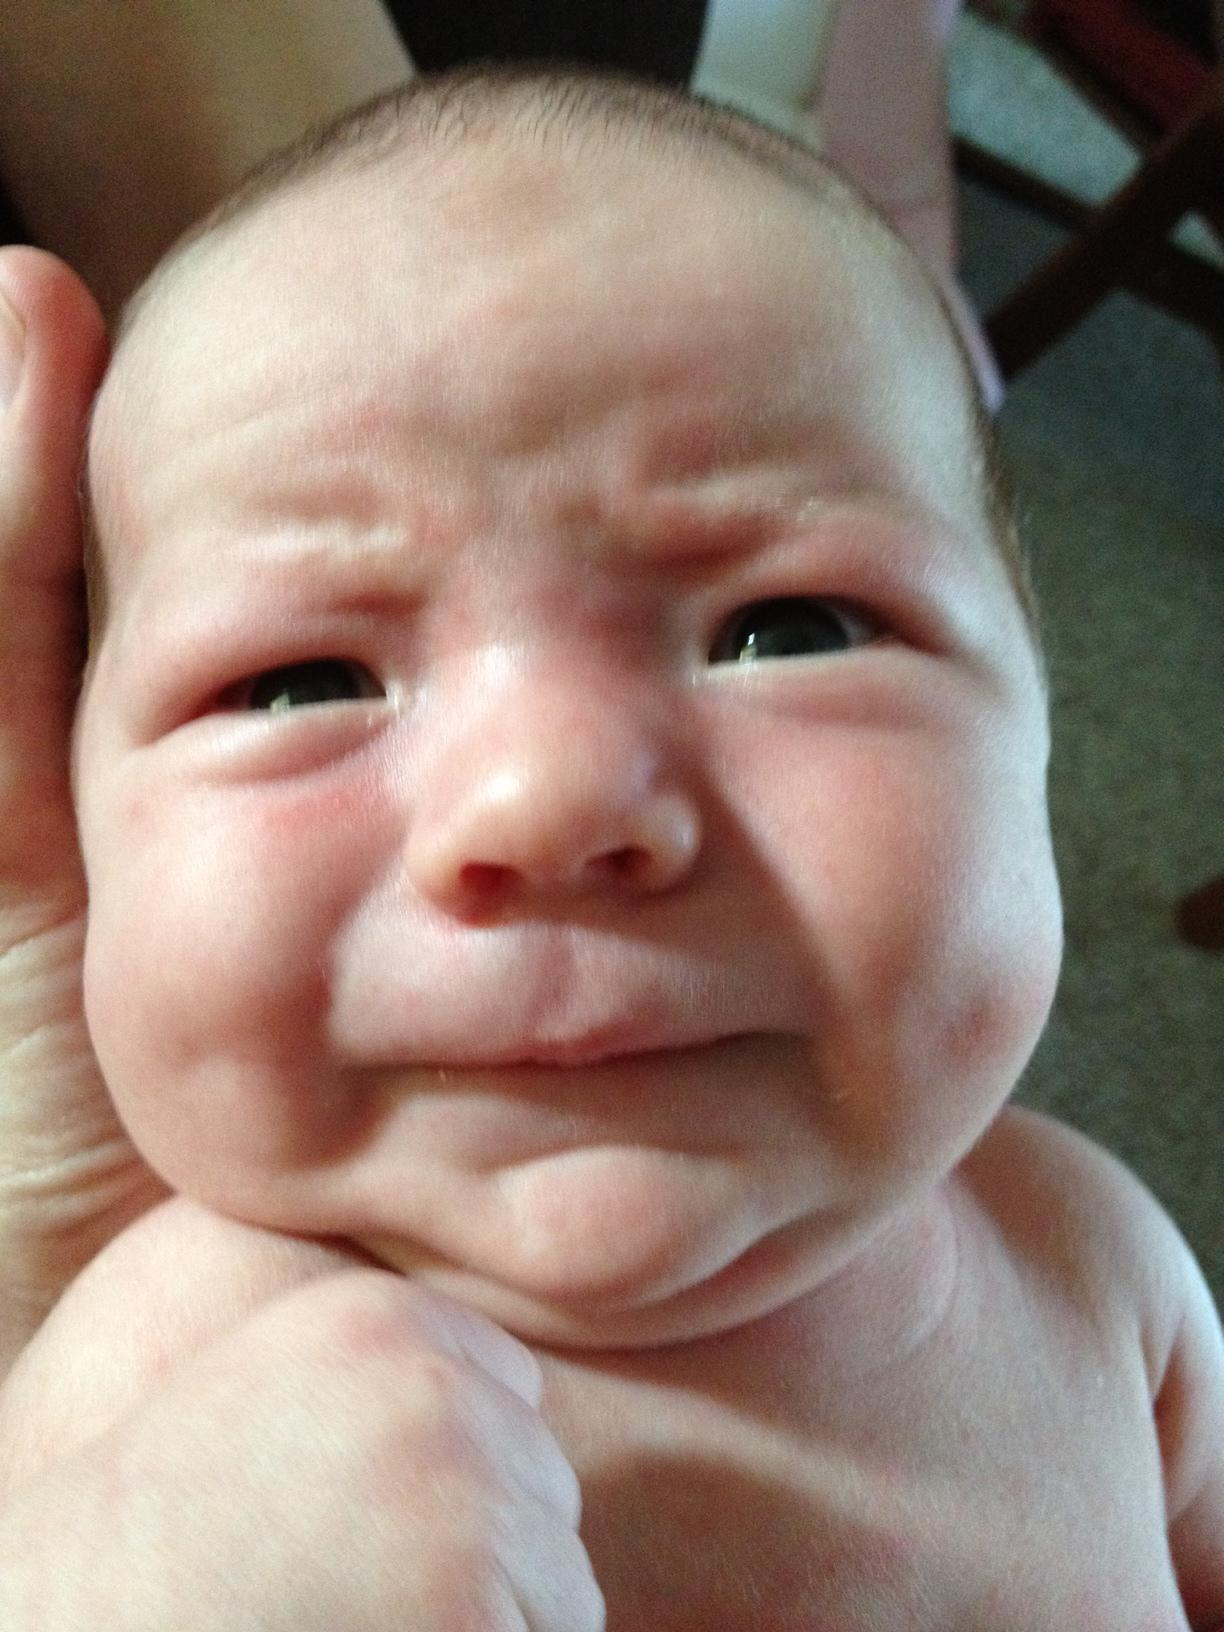 Baby Sad Face Related ...